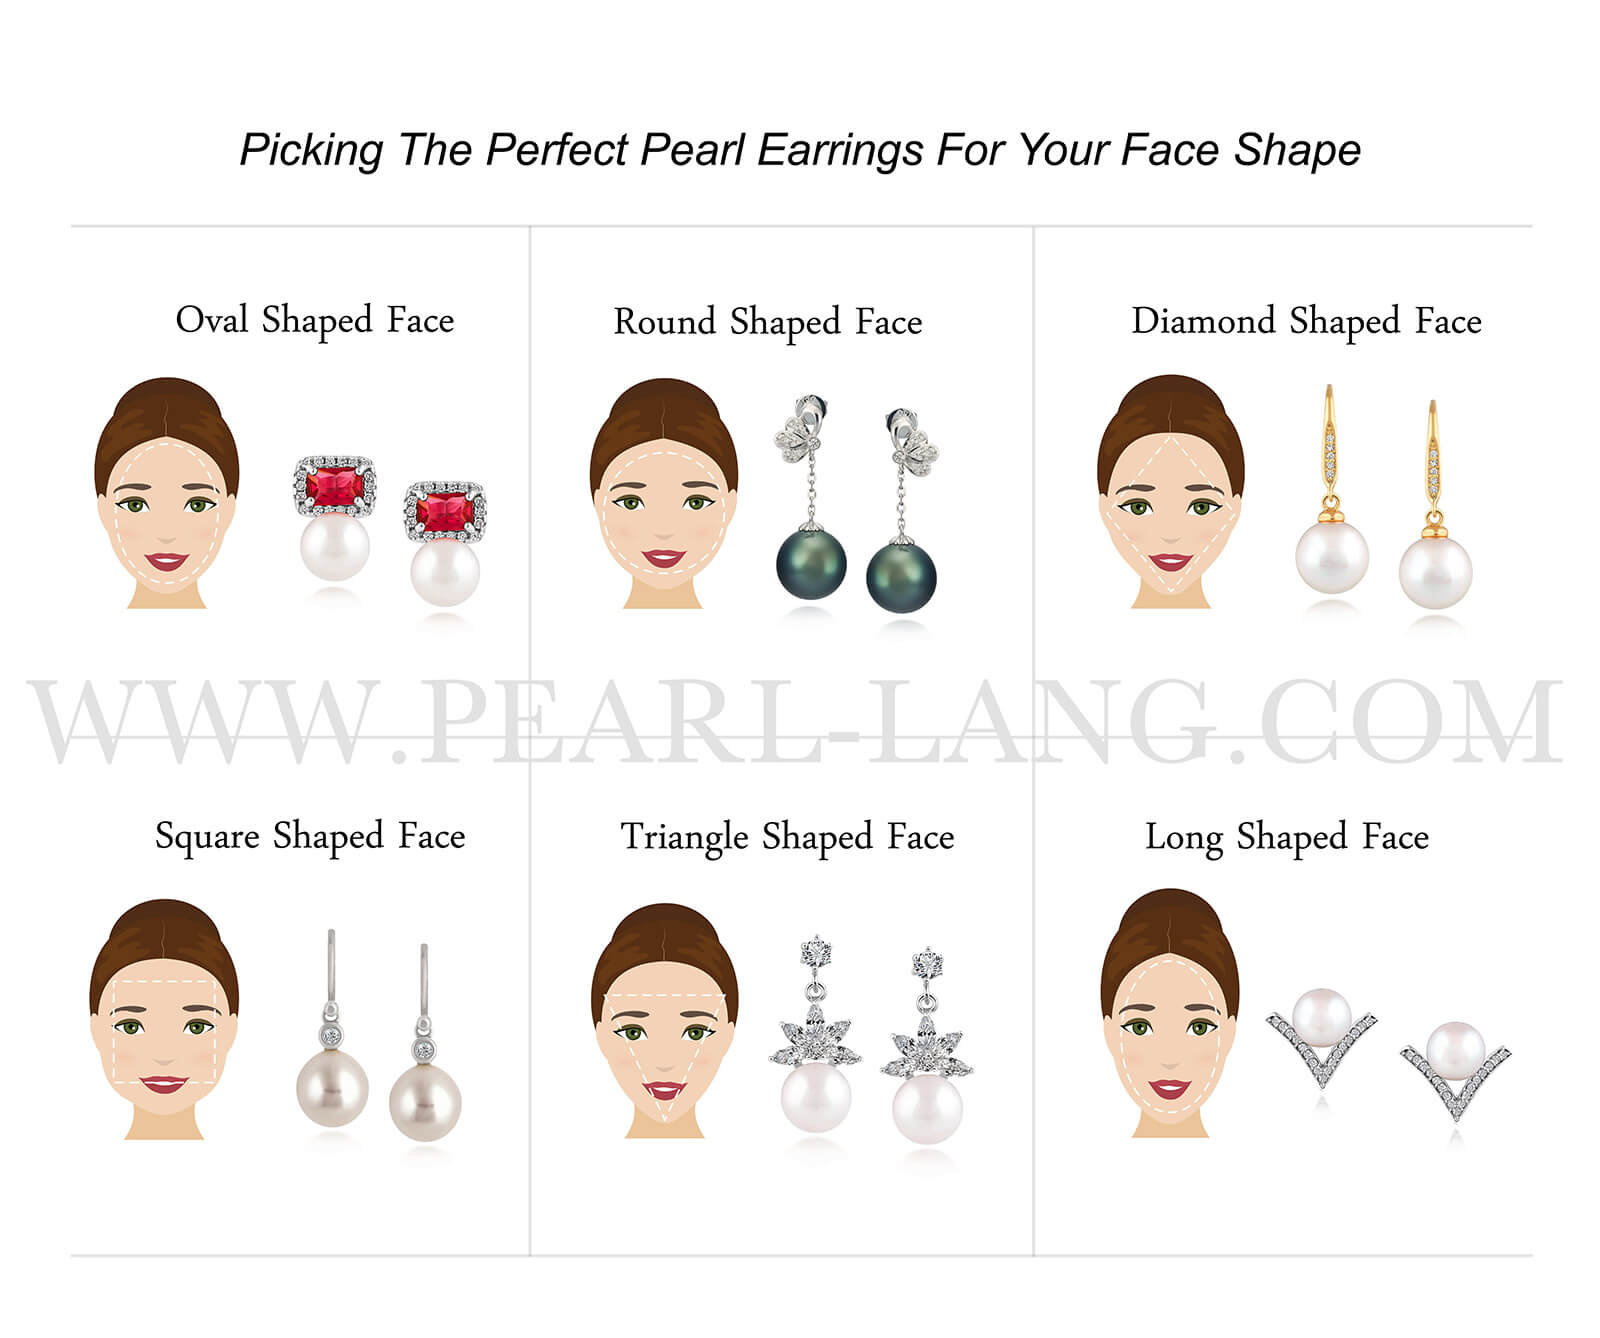 Picking the Perfect Pearl Earrings For Your Face Shape